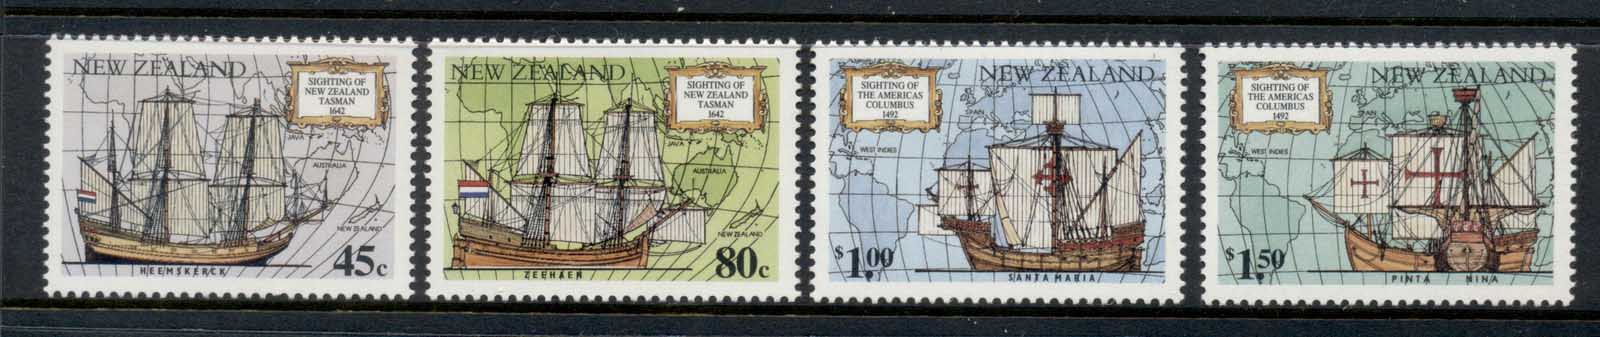 New Zealand 1992 Discovery of America, Columbus MLH